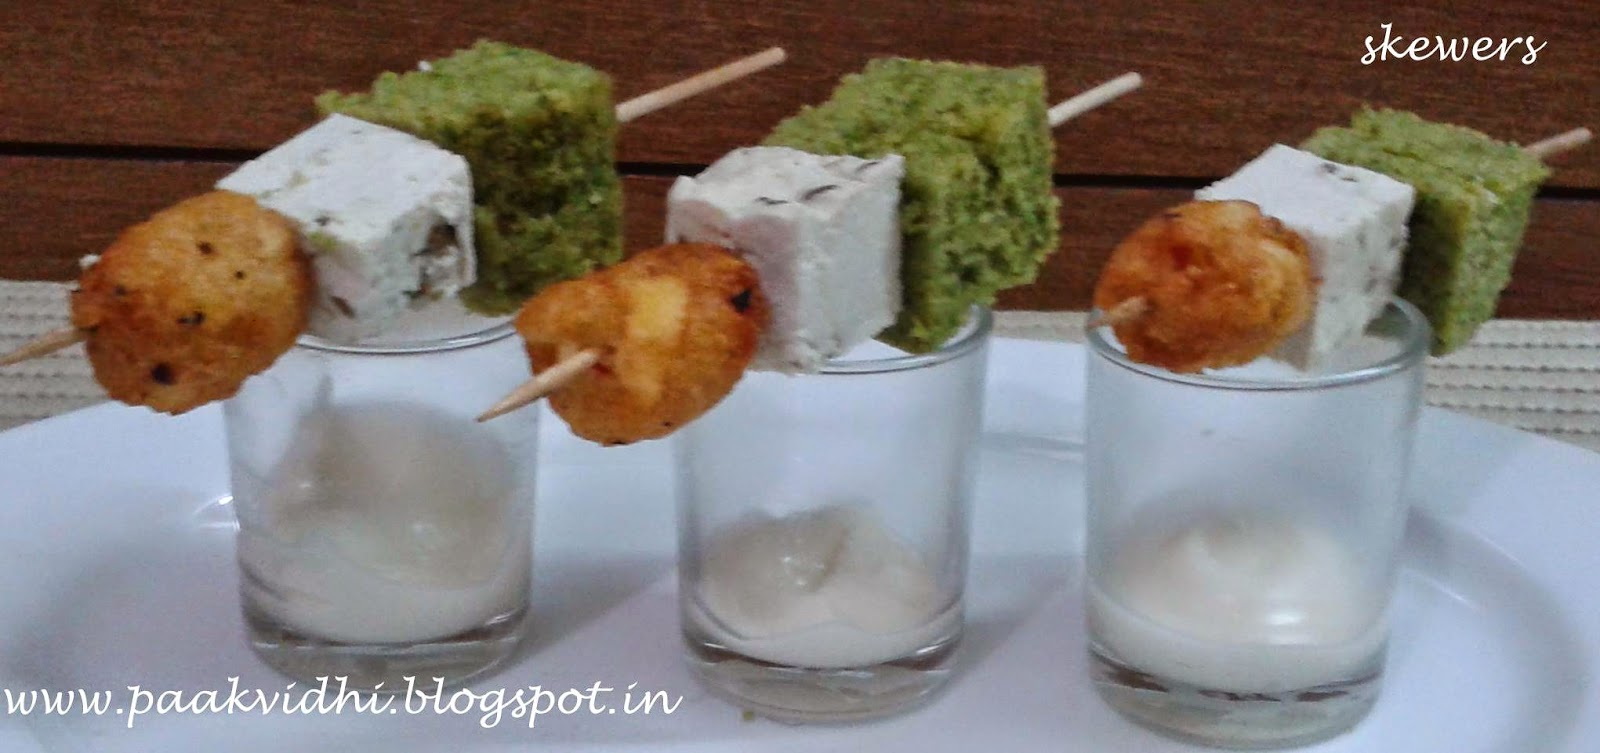 http://paakvidhi.blogspot.in/2014/07/snacks-skewers.html